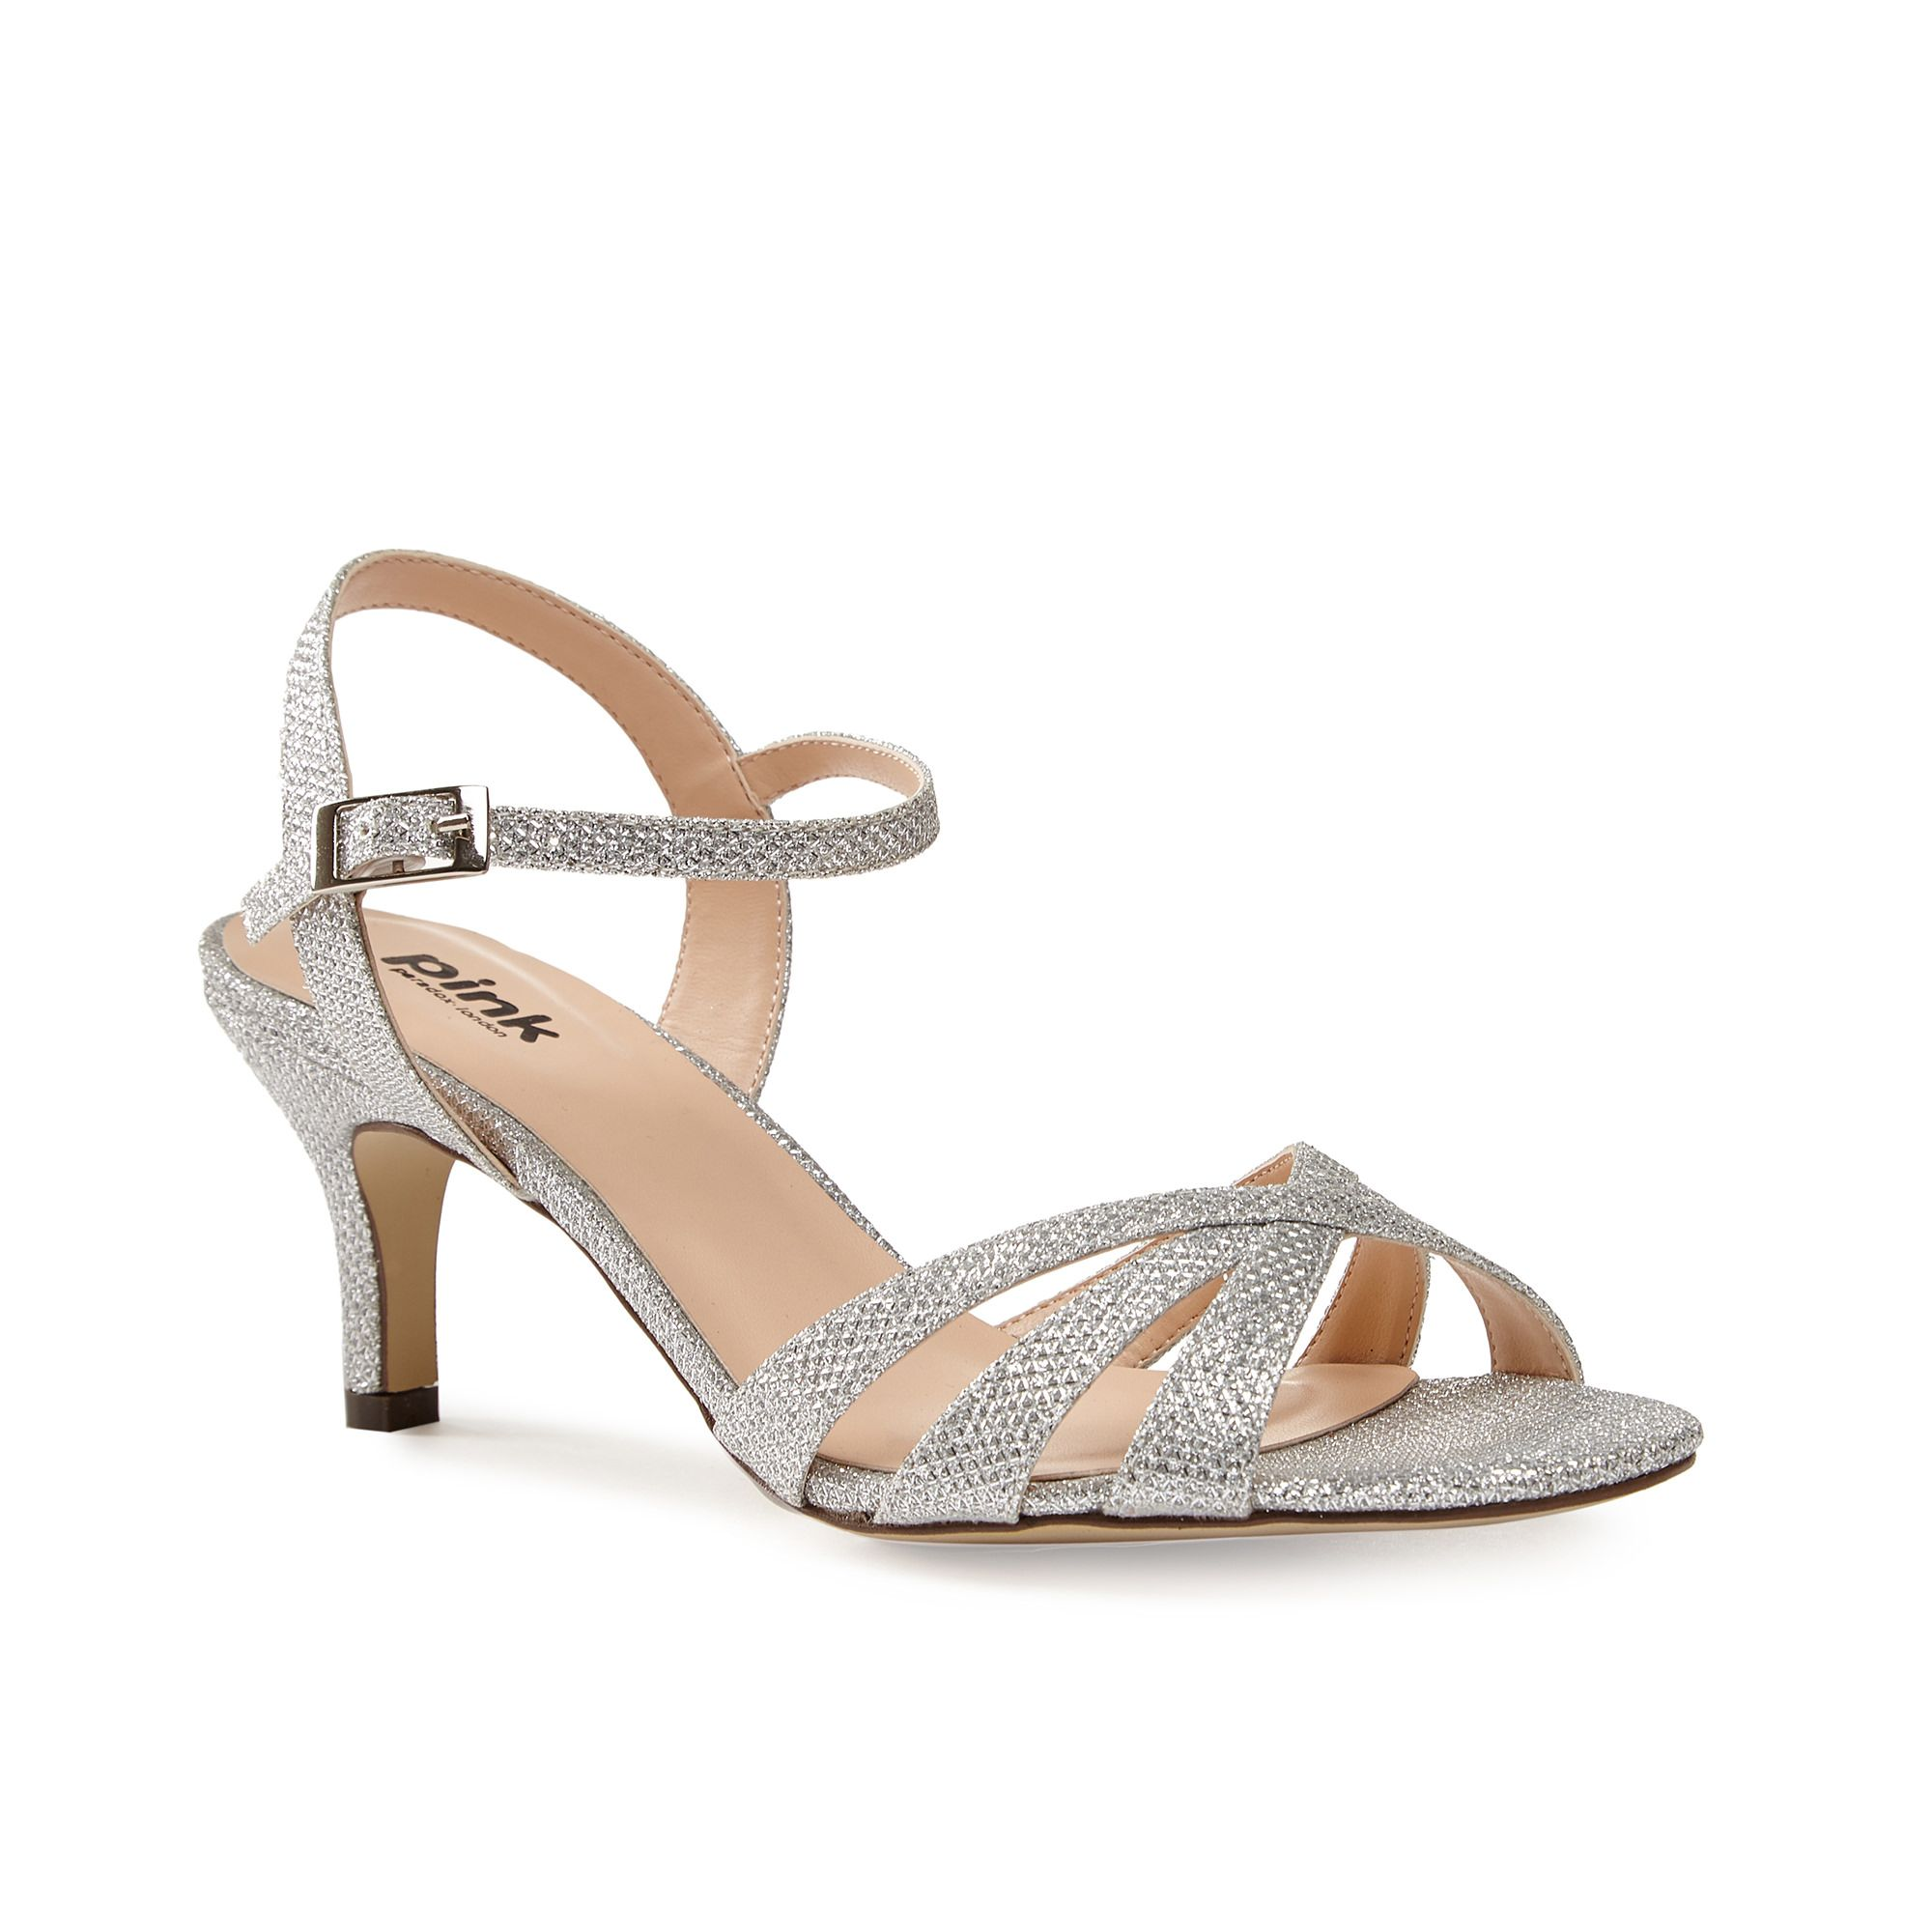 Paradox London Pink Paradox London Pink Shelby strappy glitter sandals, Silver